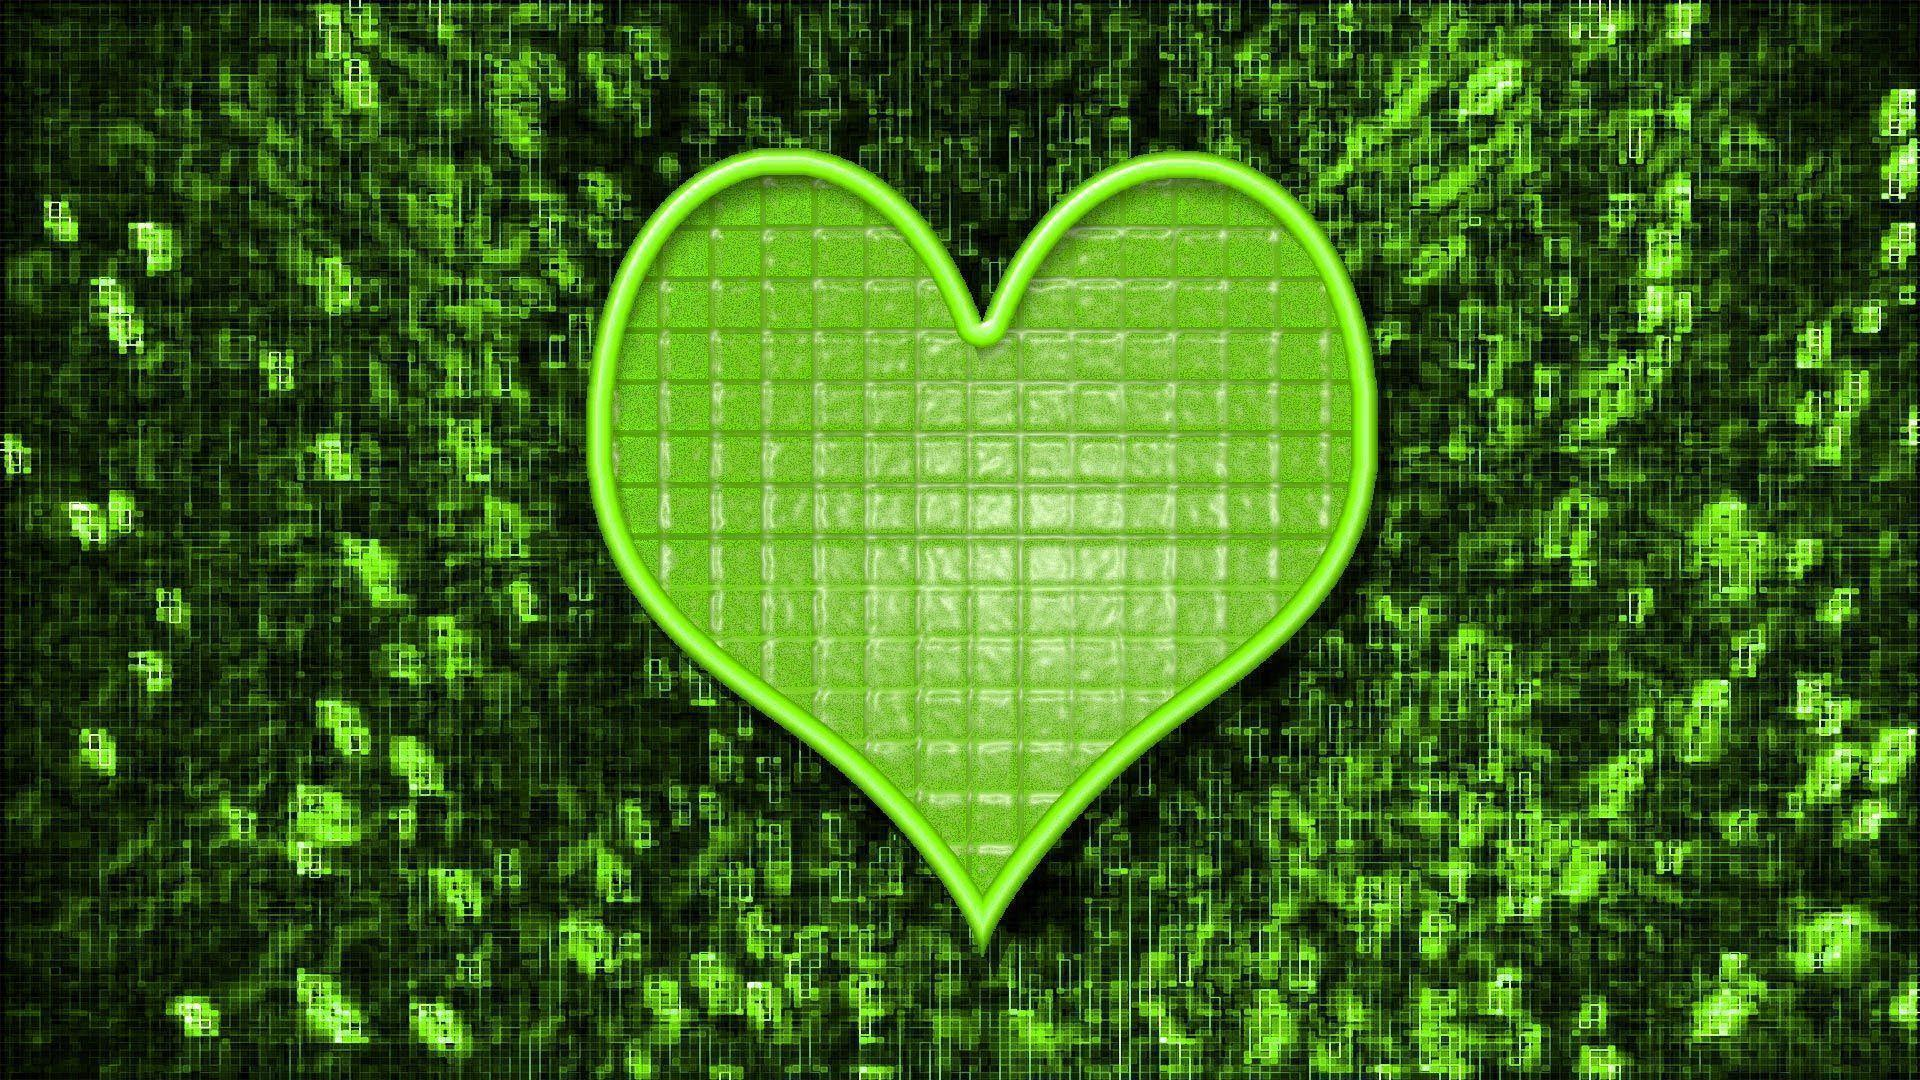 Neon Green Wallpapers - Wallpaper Cave Neon Green Backgrounds